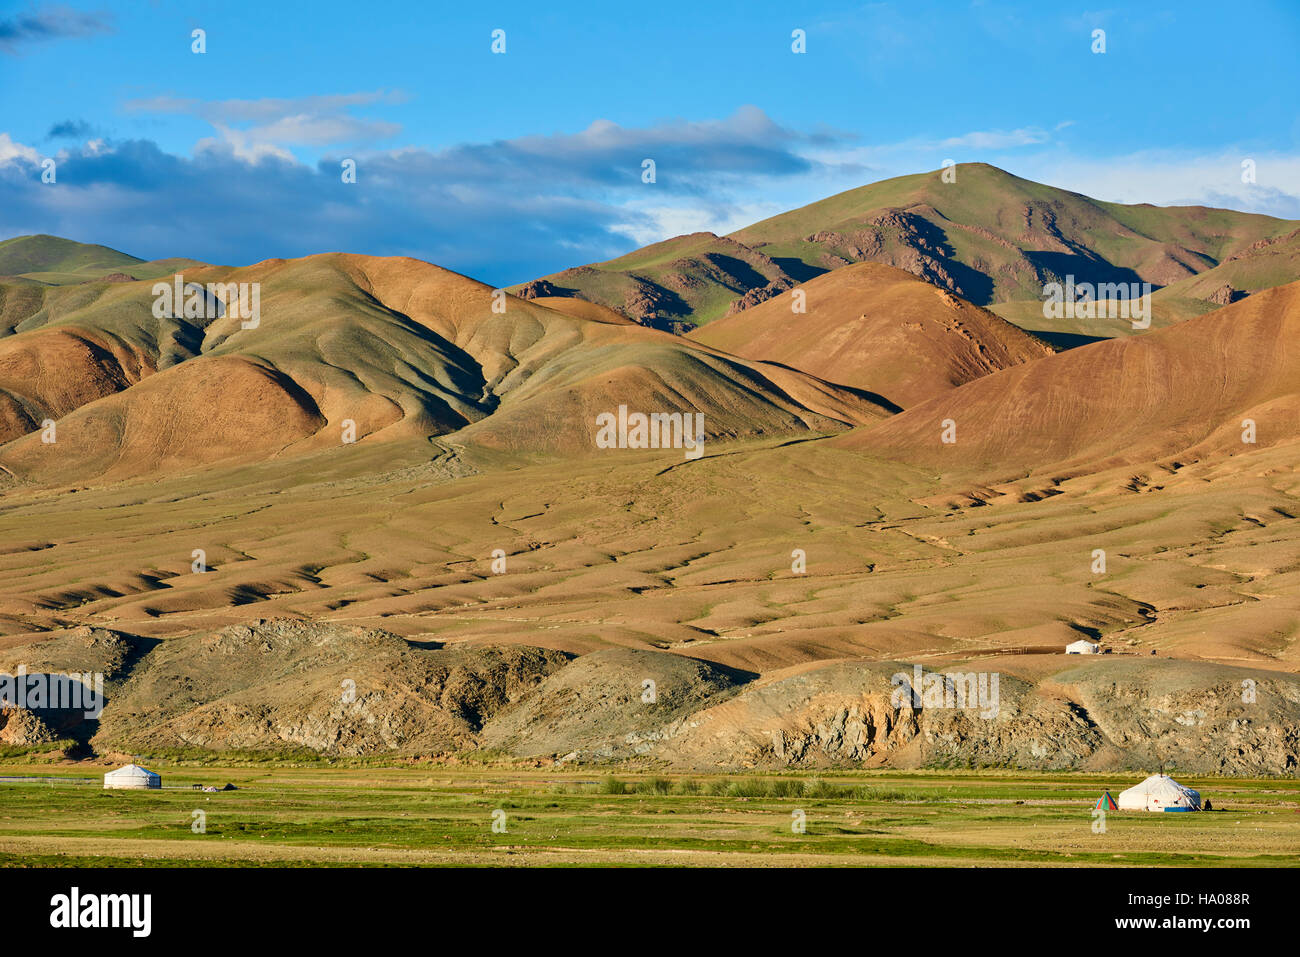 Mongolia, Bayan-Ulgii province, western Mongolia, the colored mountains of the Altay, nomad camp of the Kazakh people Stock Photo